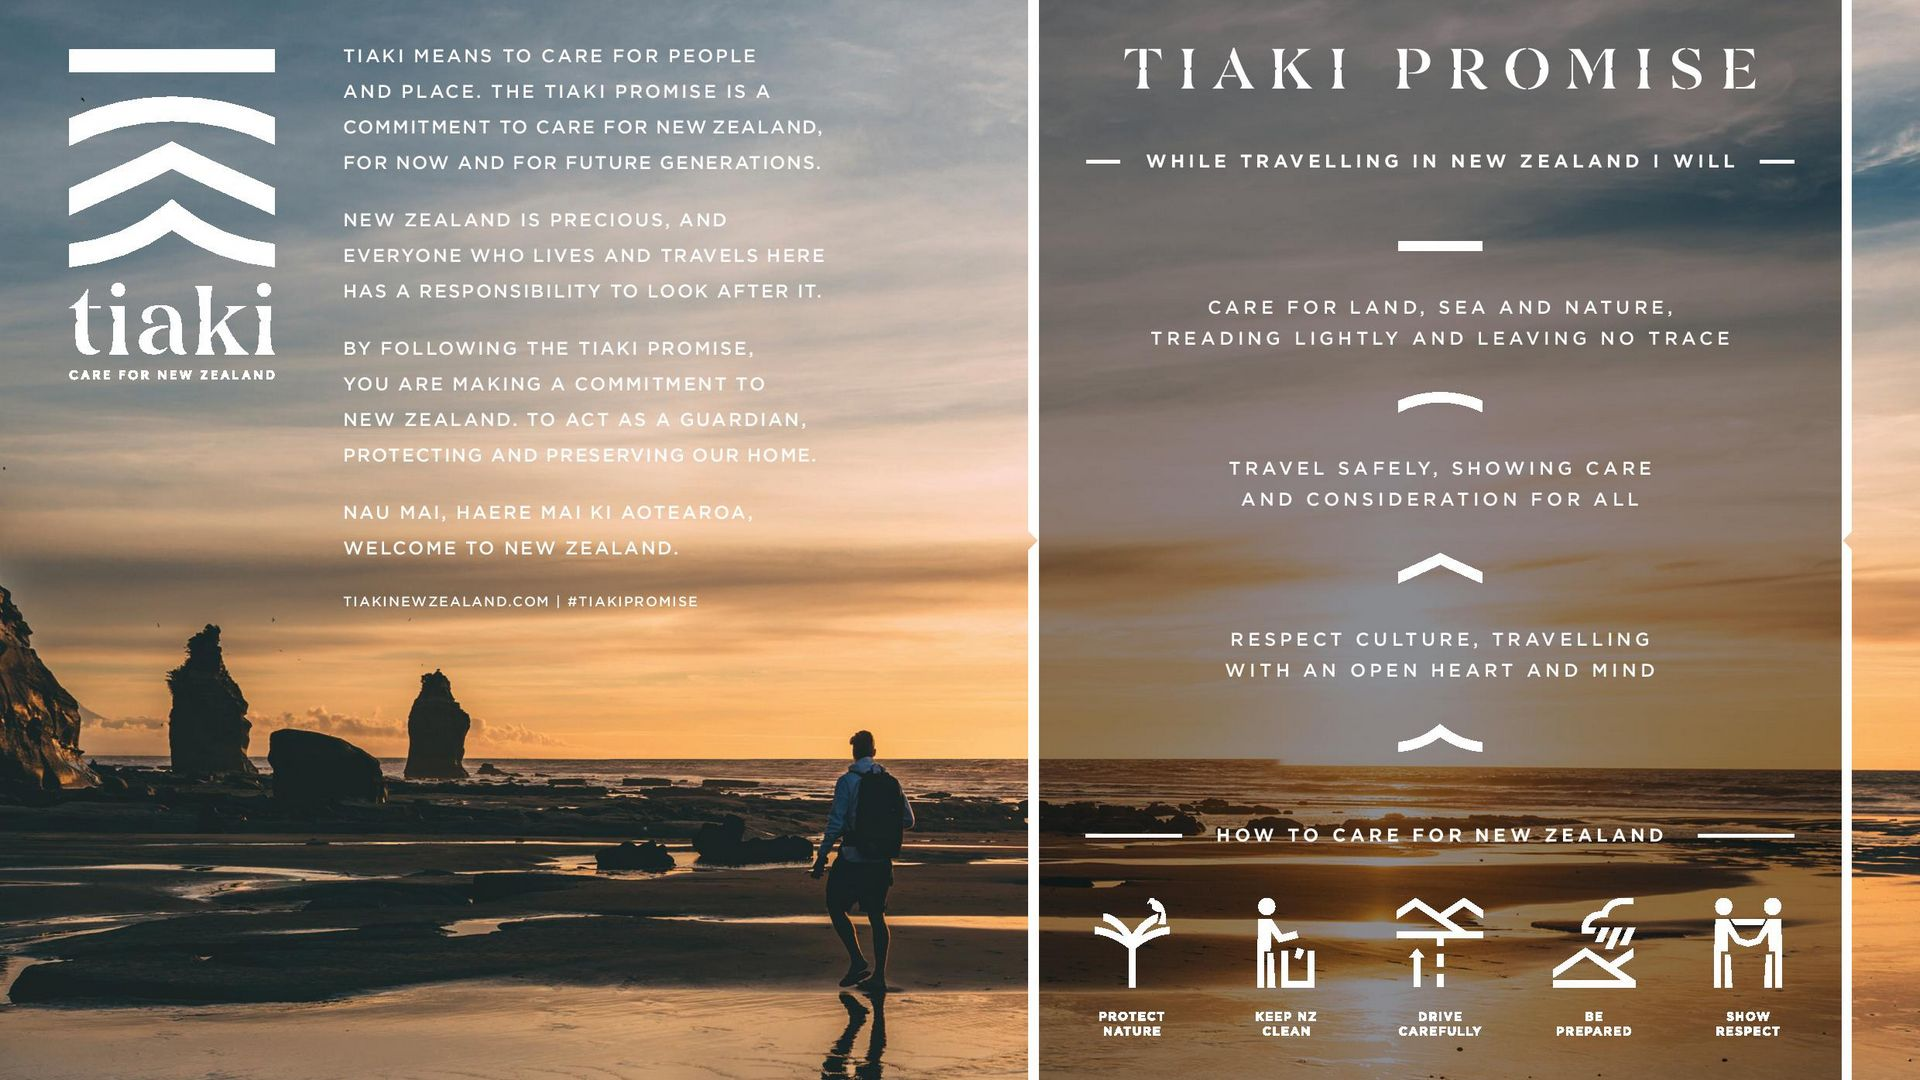 The Tiaki Promise - Looking after New Zealand for everyone